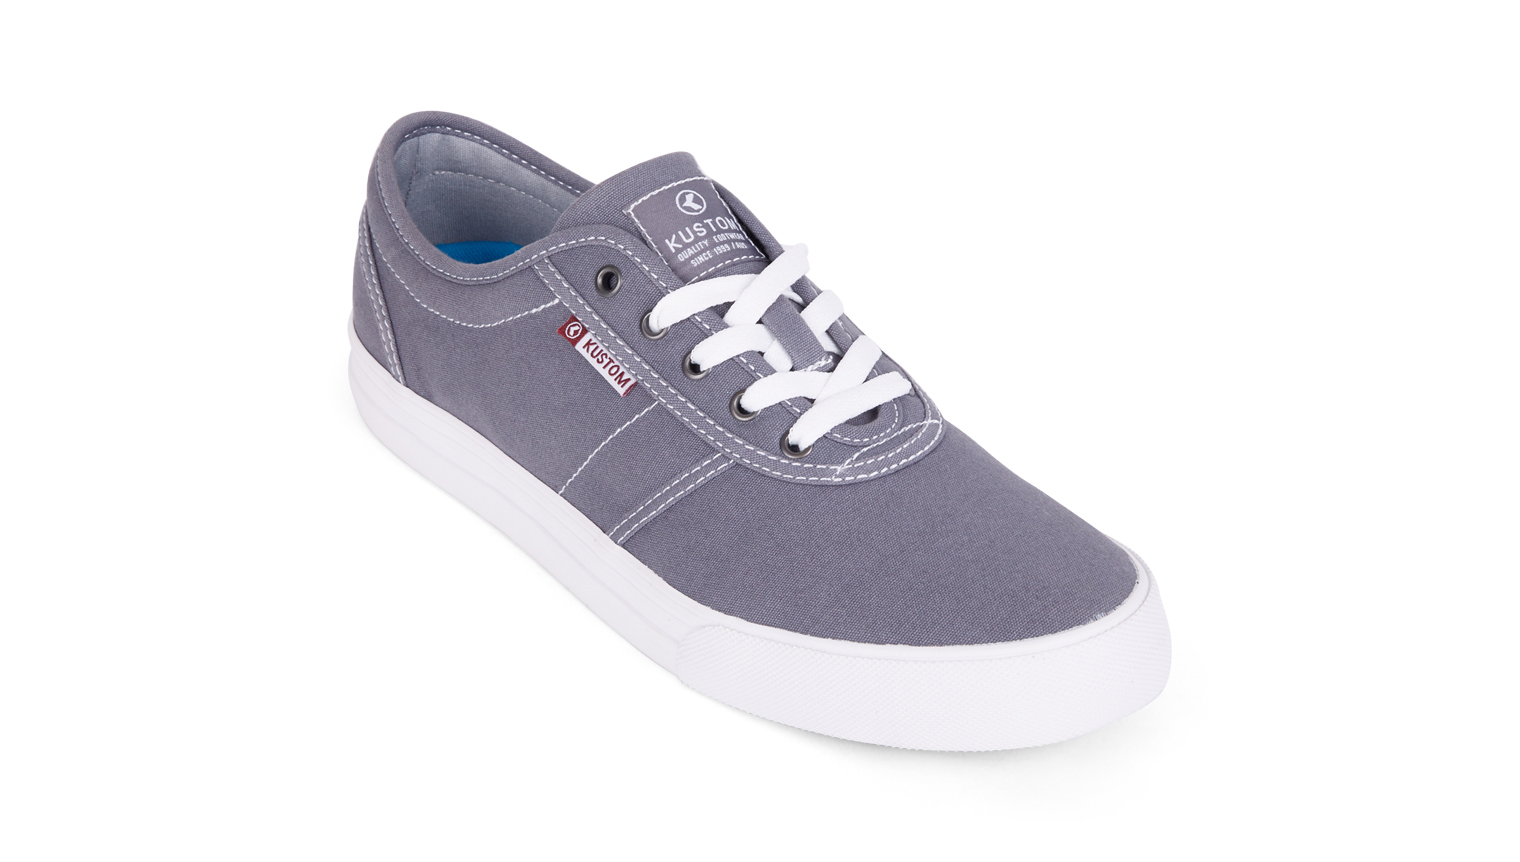 KUSTOM SHOES DROPKICK PRO SHOE / GREY WHITE